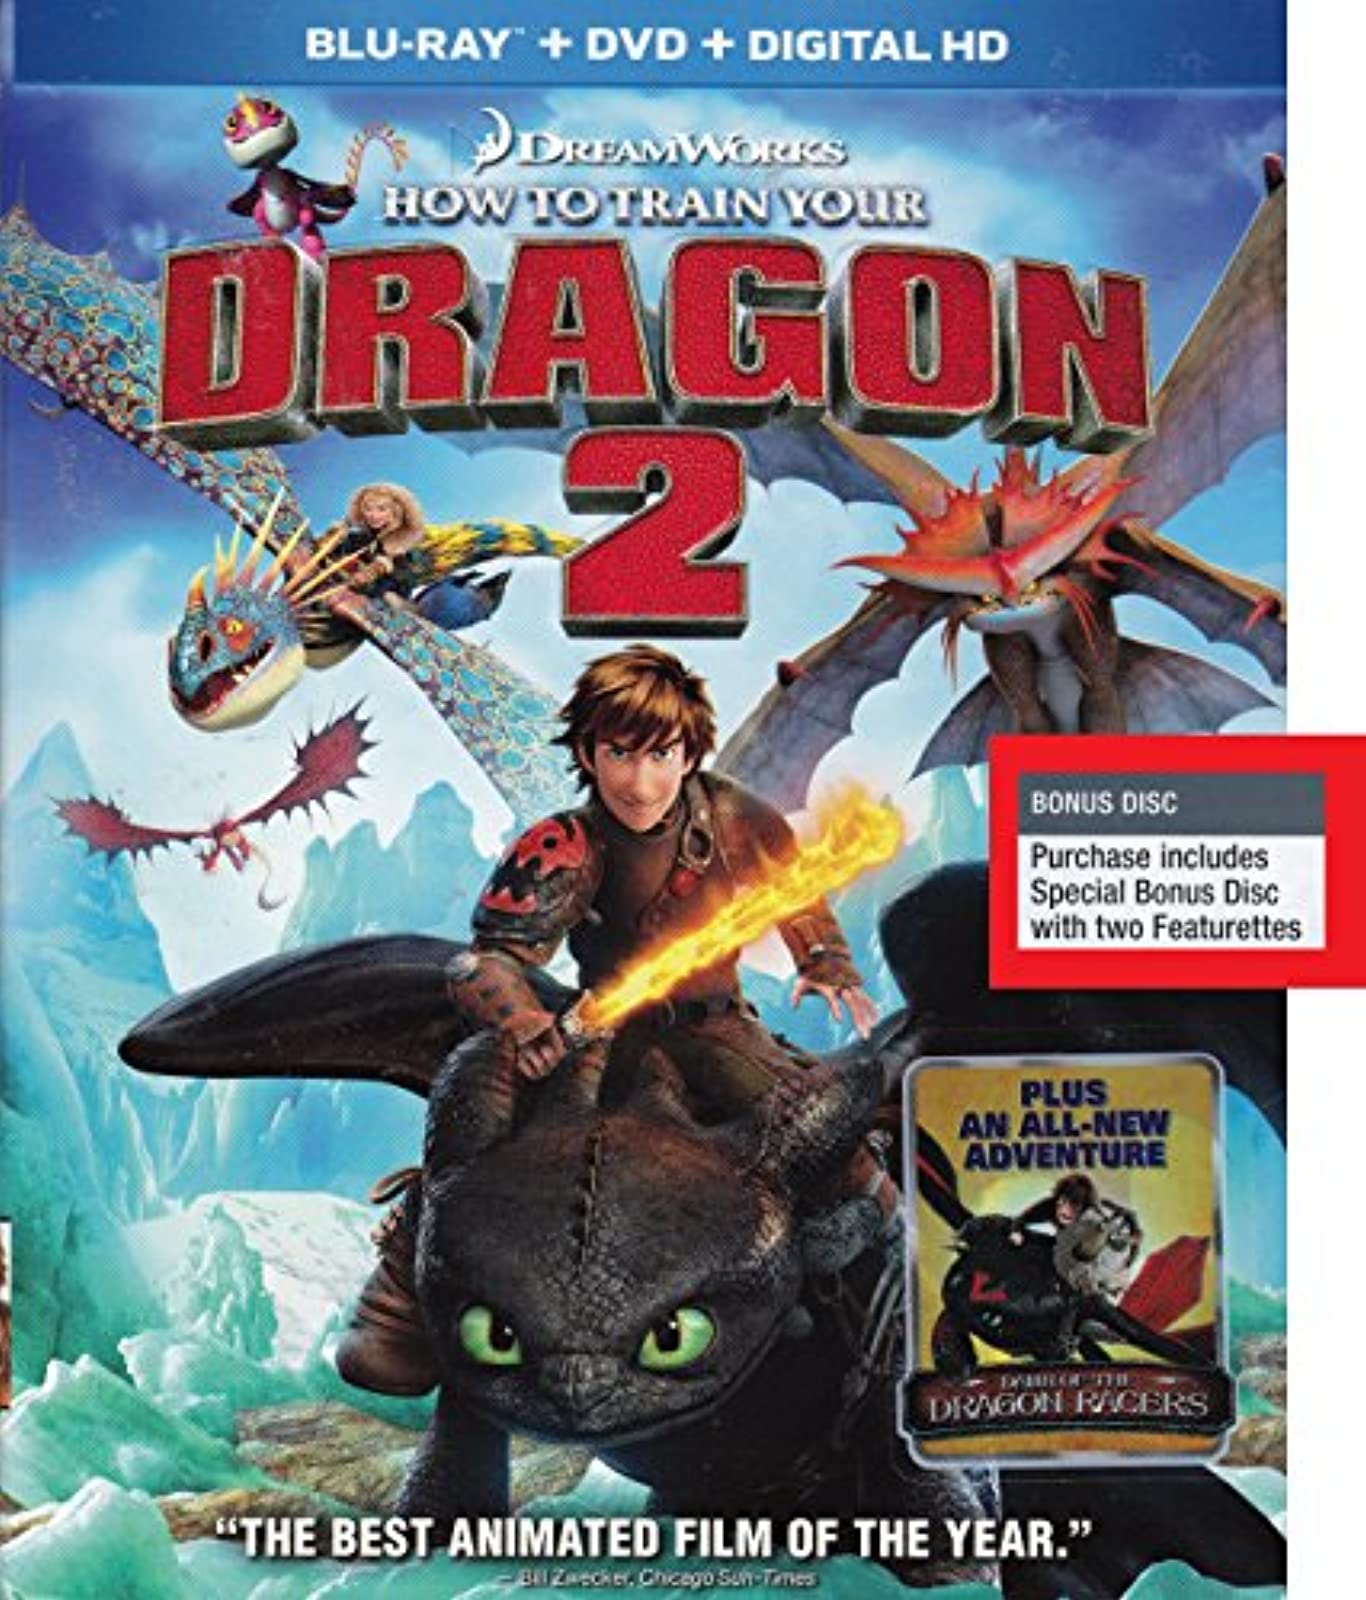 How To Train Your Dragon 2 Blu-Ray On Blu-Ray Anime